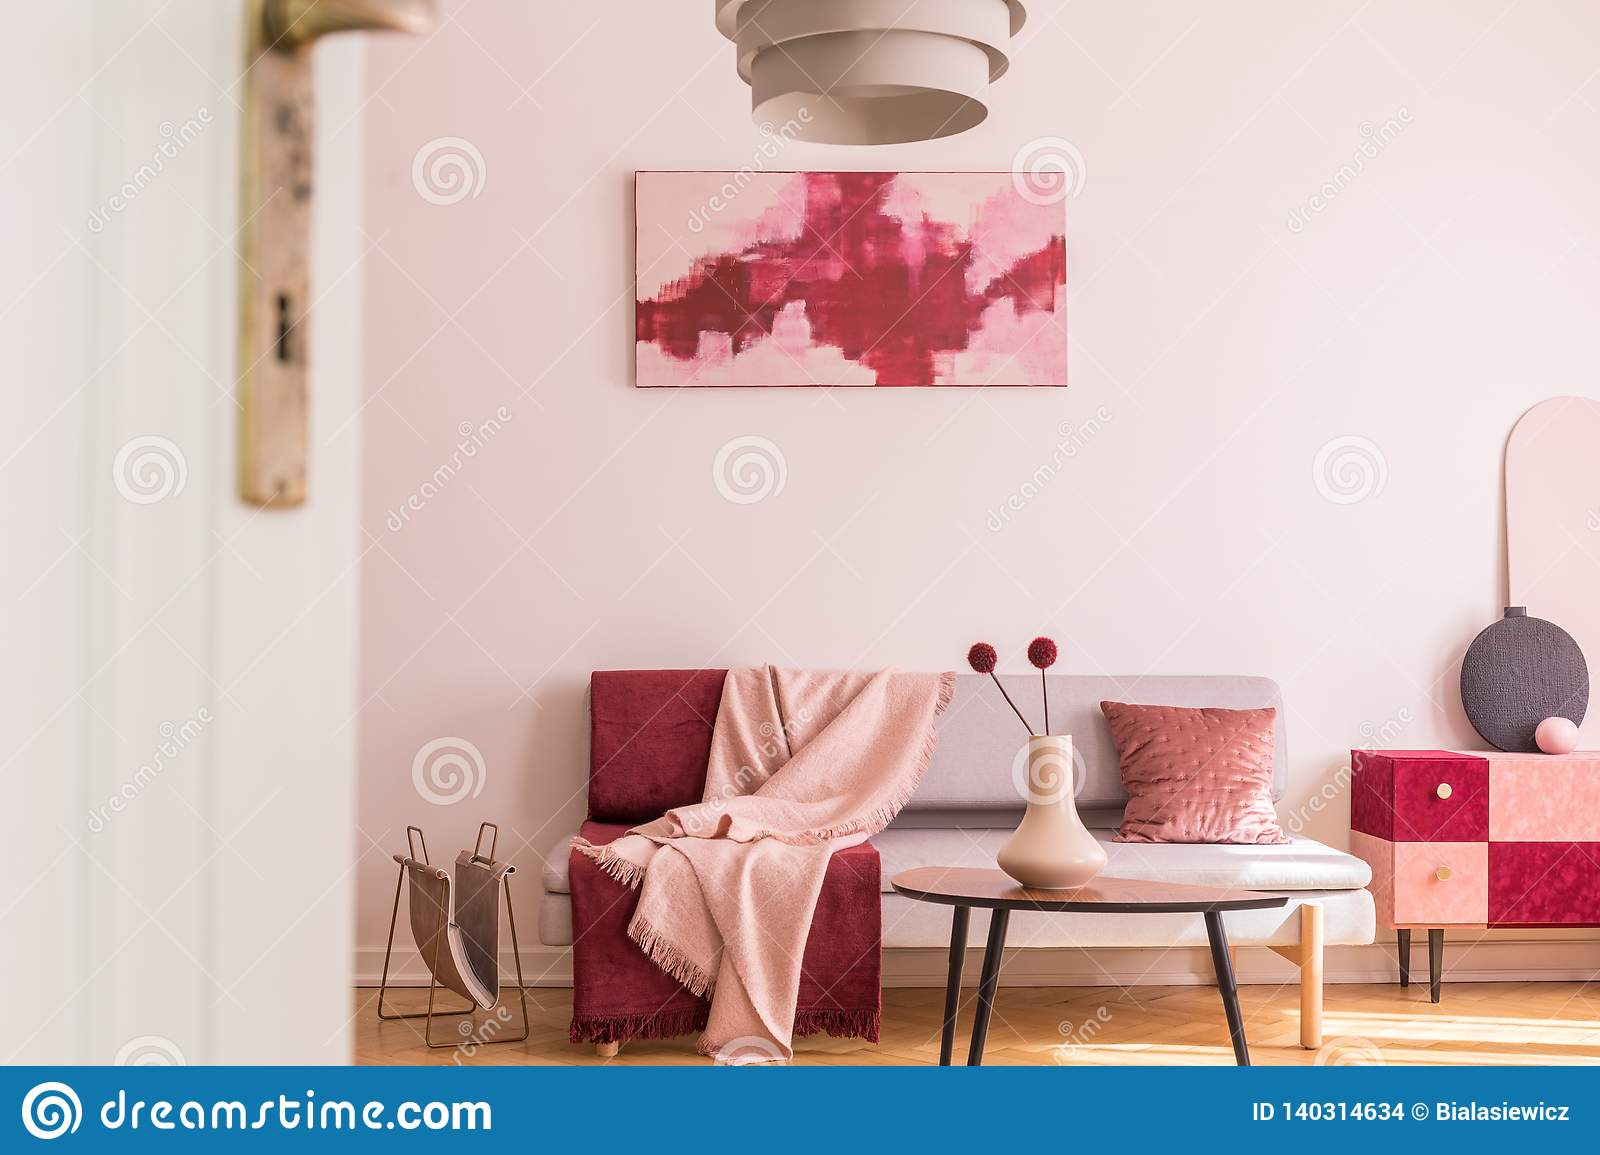 Abstract burgundy and pastel pink painting on empty white wall of trendy living room interior with grey sofa and cabinet